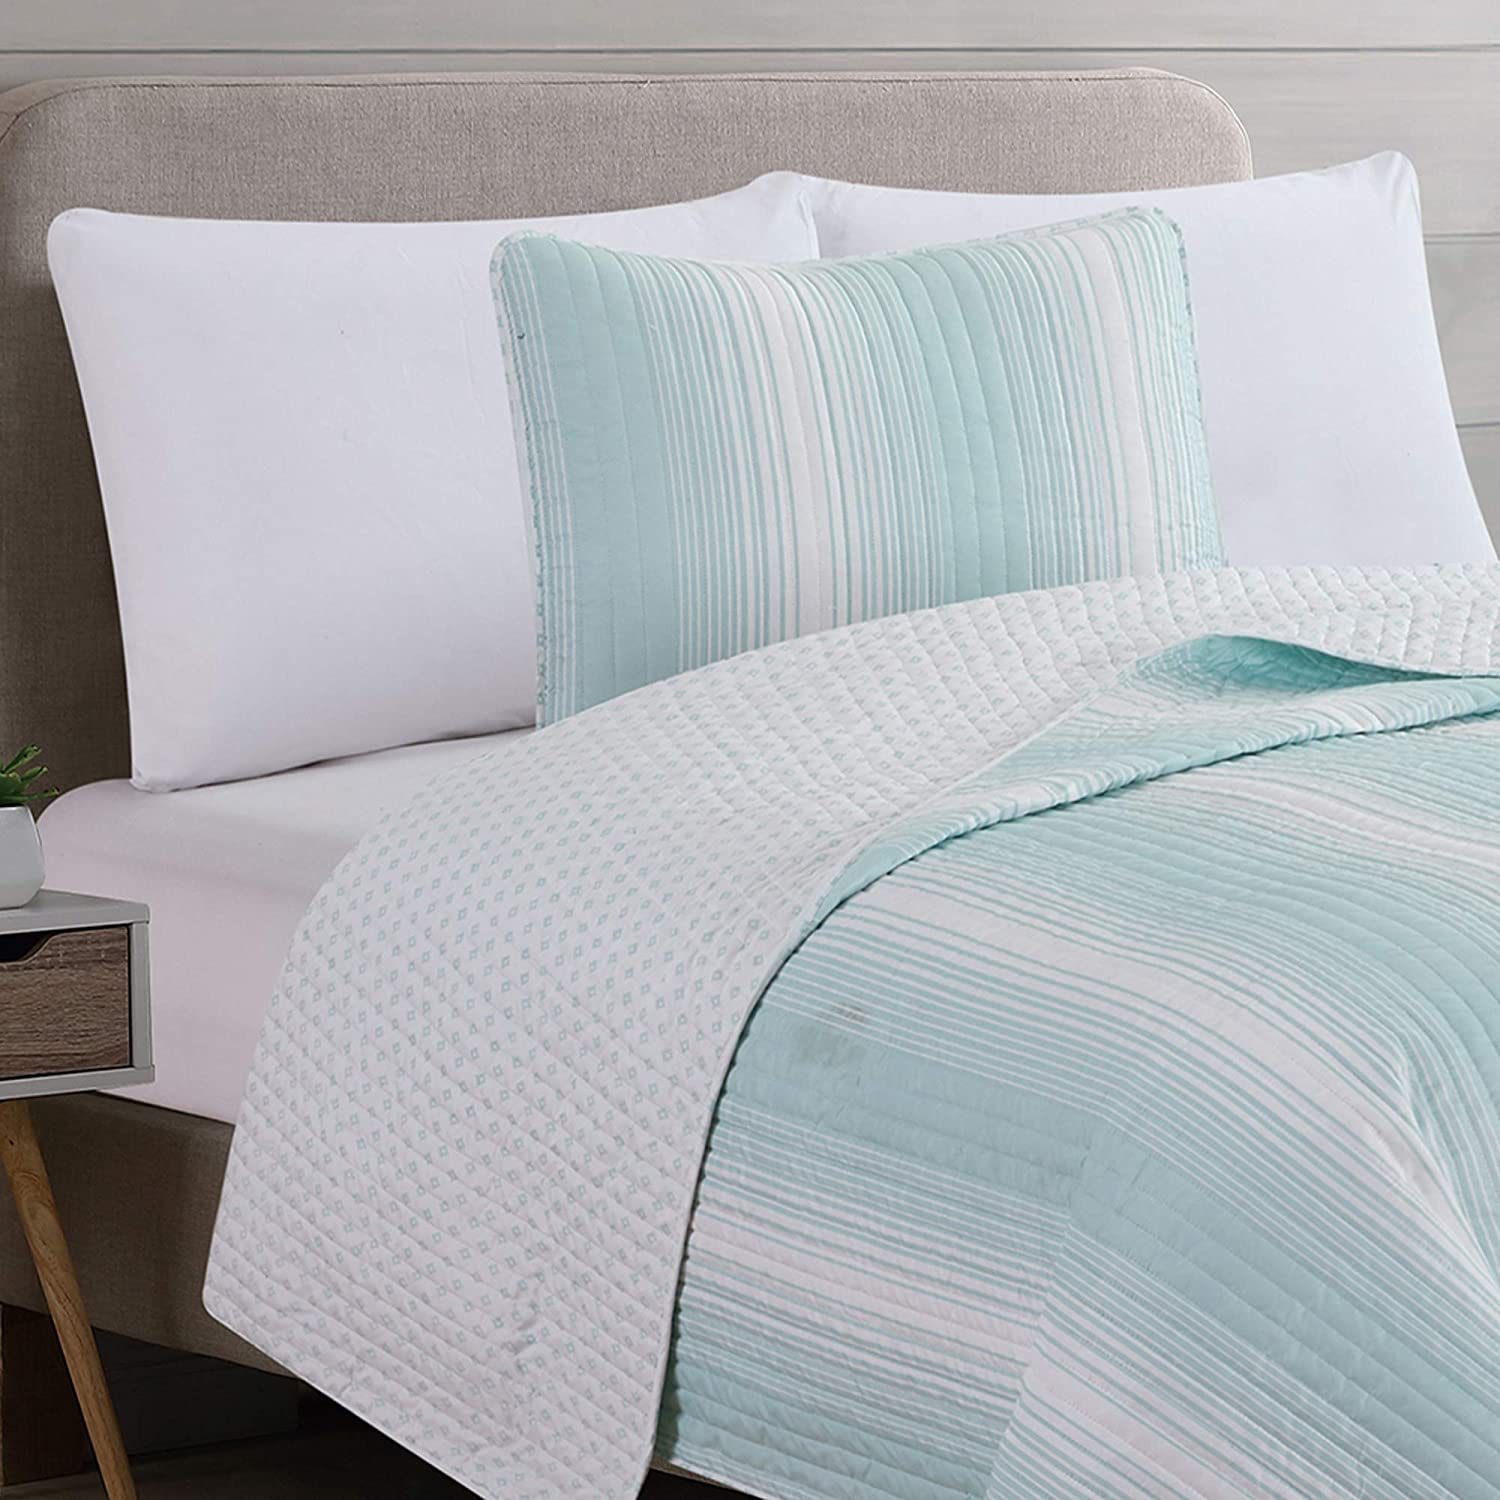 Twin, Grey All-Season Bedspread with Ombre Striped Pattern 2-Piece Reversible Quilt Set with Shams Everette Collection